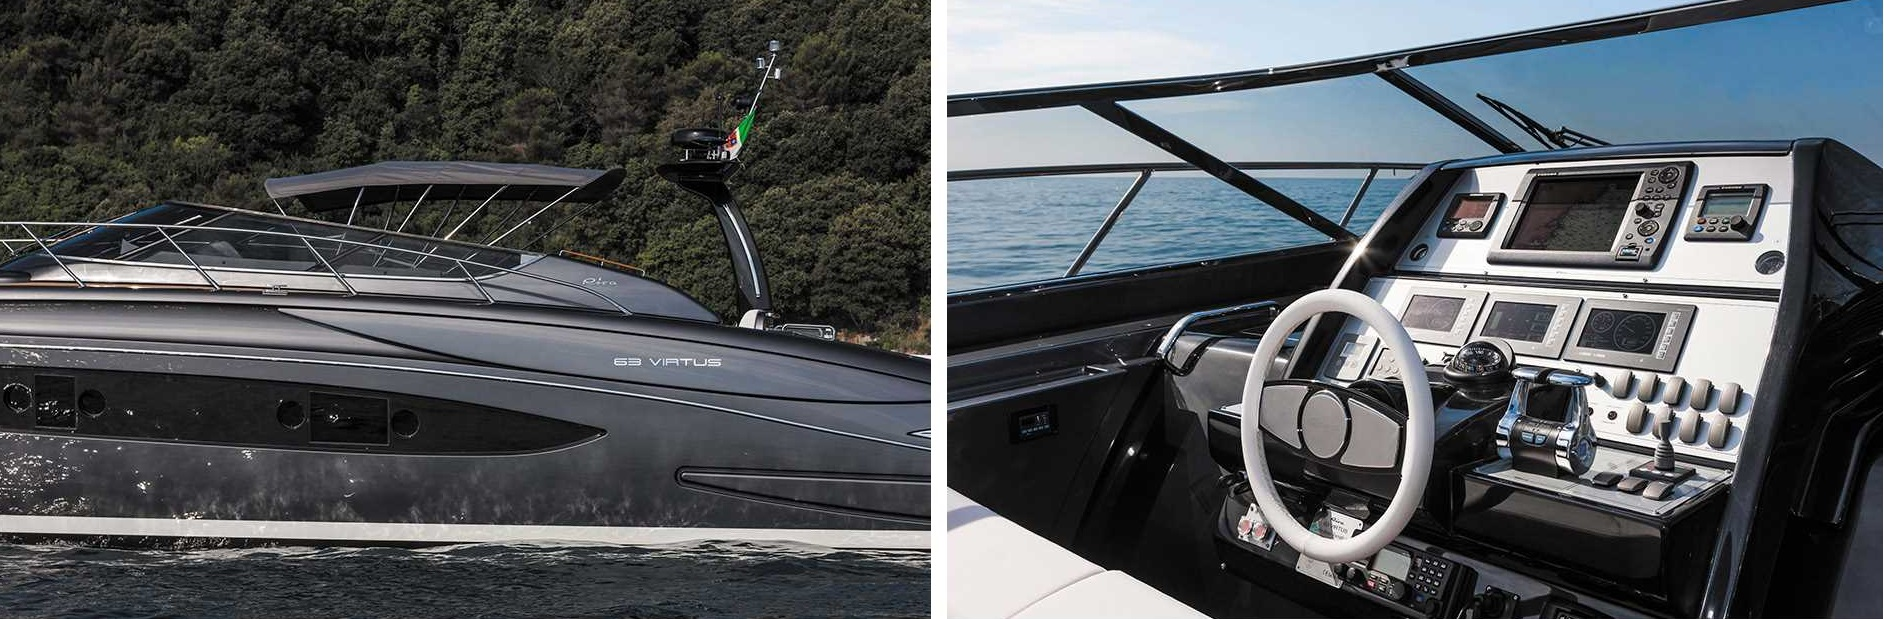 2016 Riva 63 Virtus Performance Yacht for sale